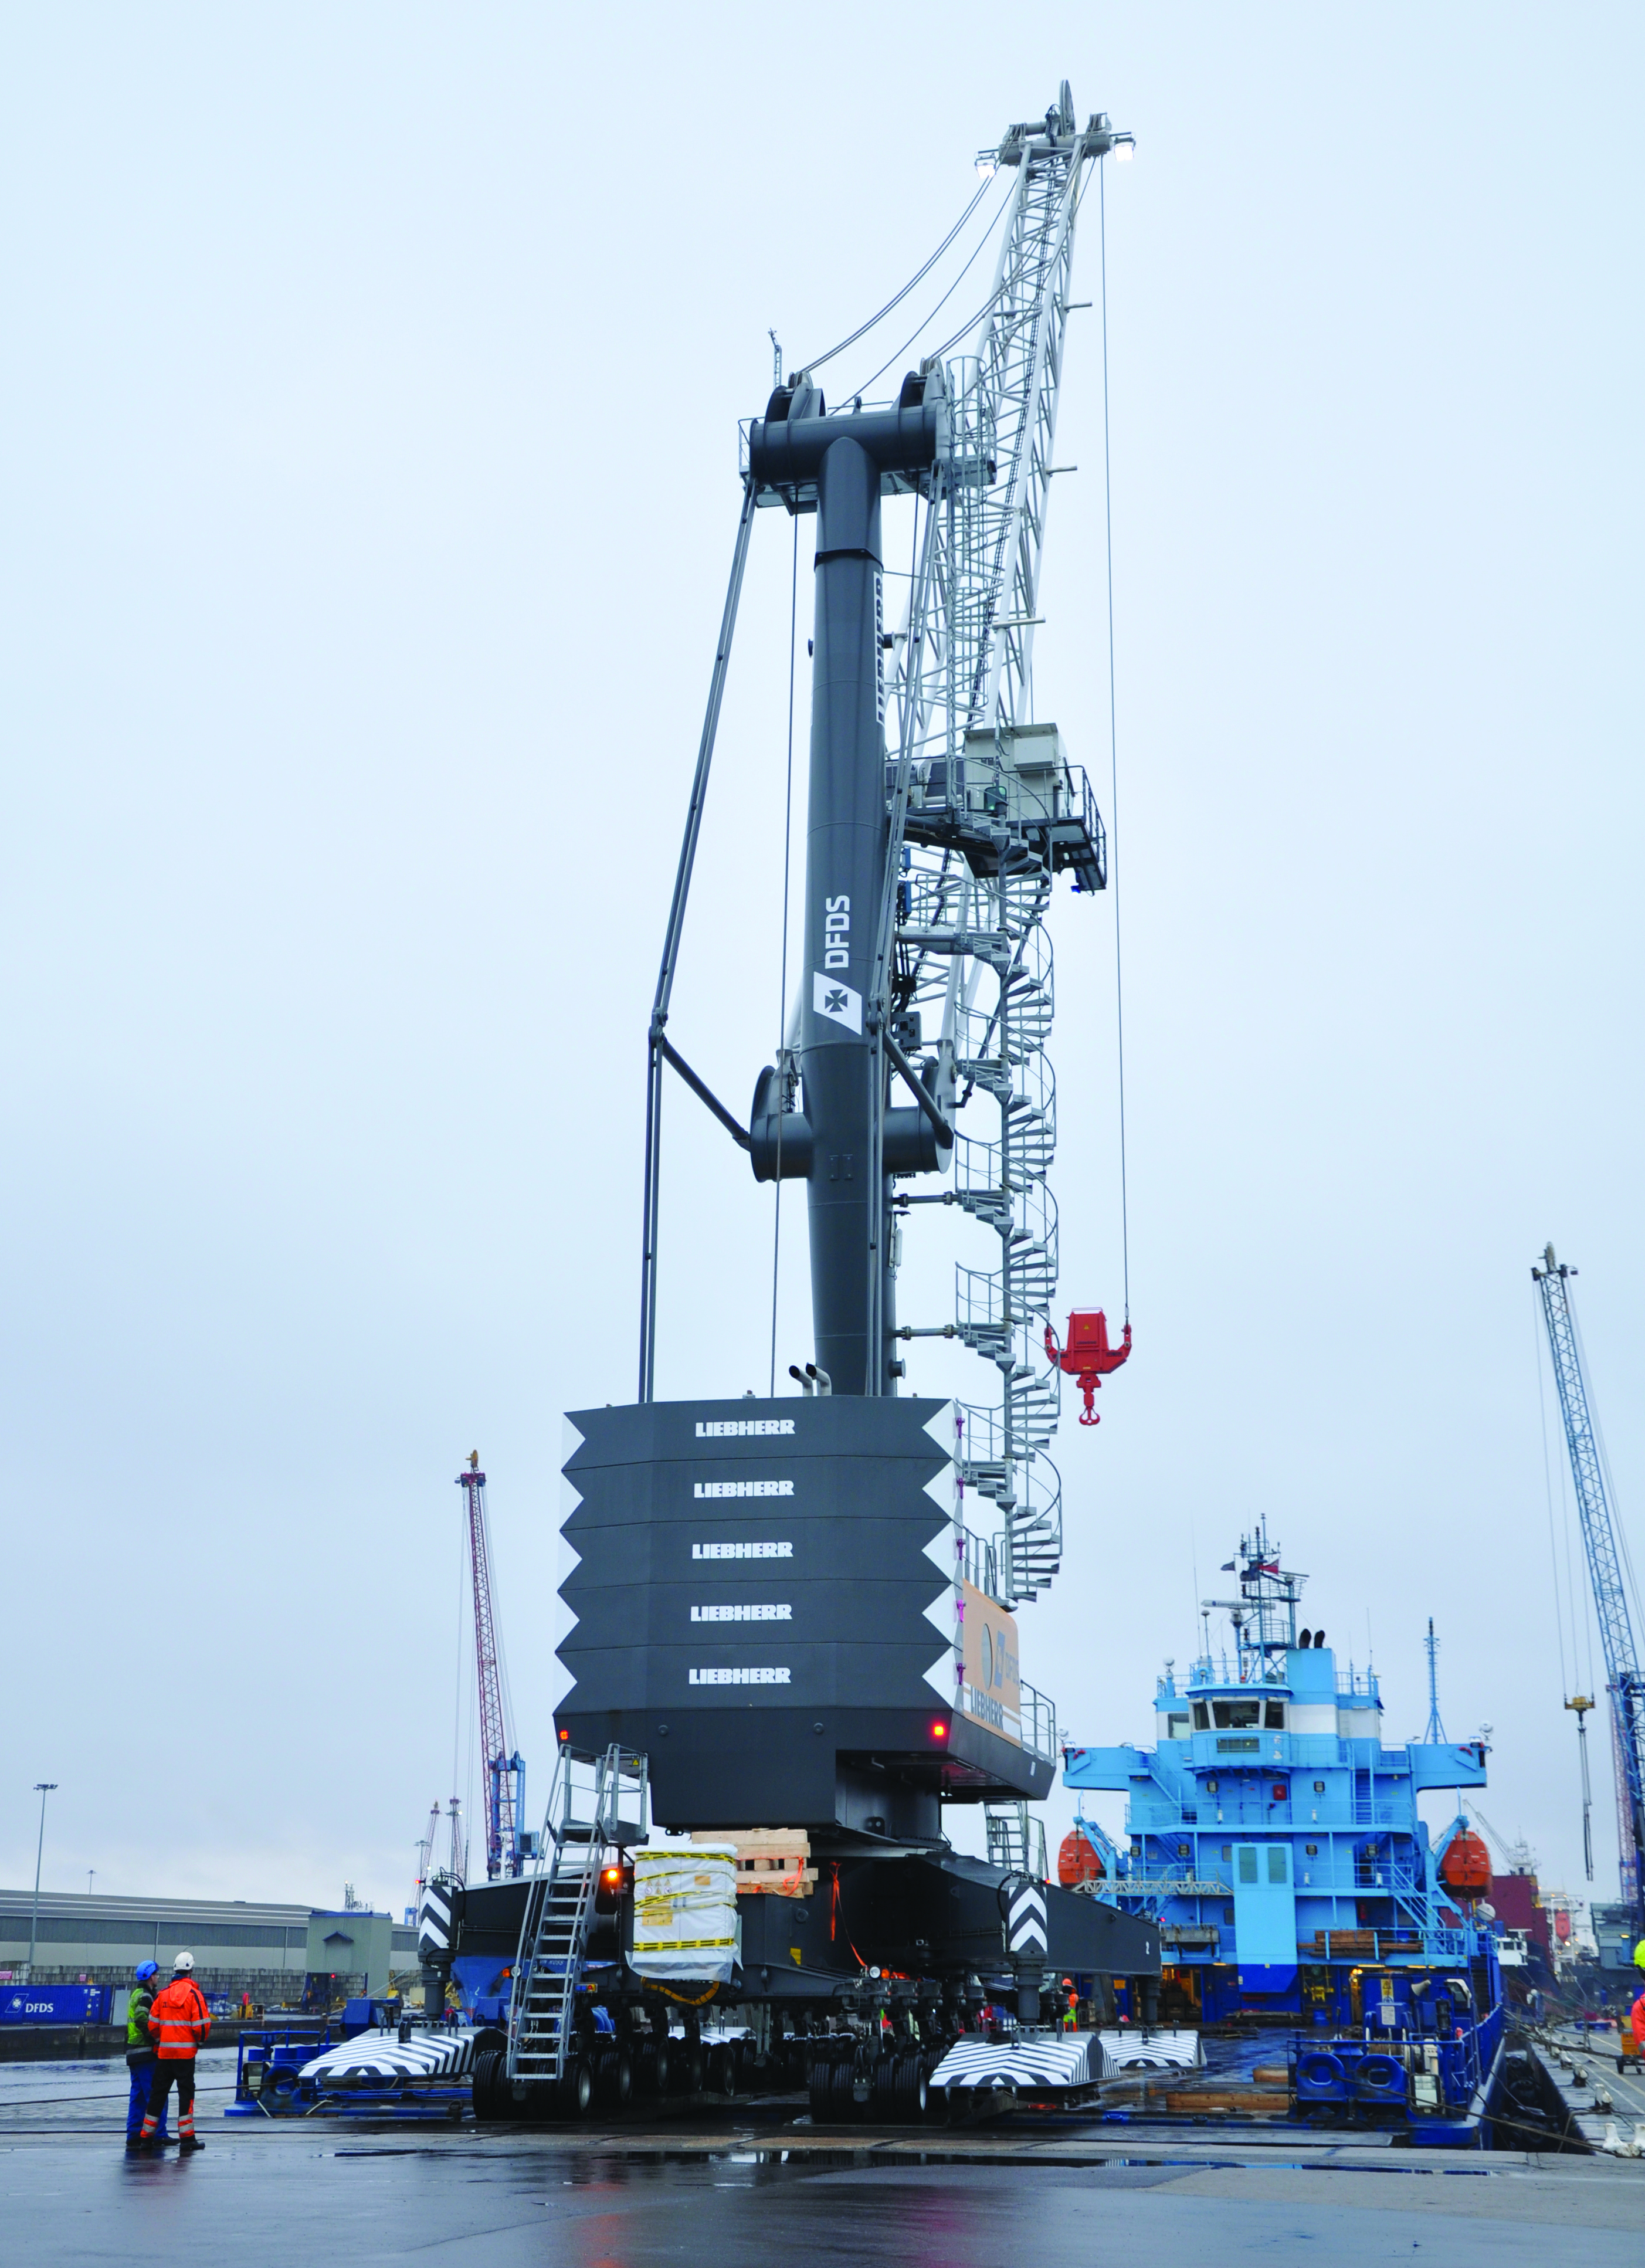 The crane is equipped with a cable reeling system to run off the port grid, as required